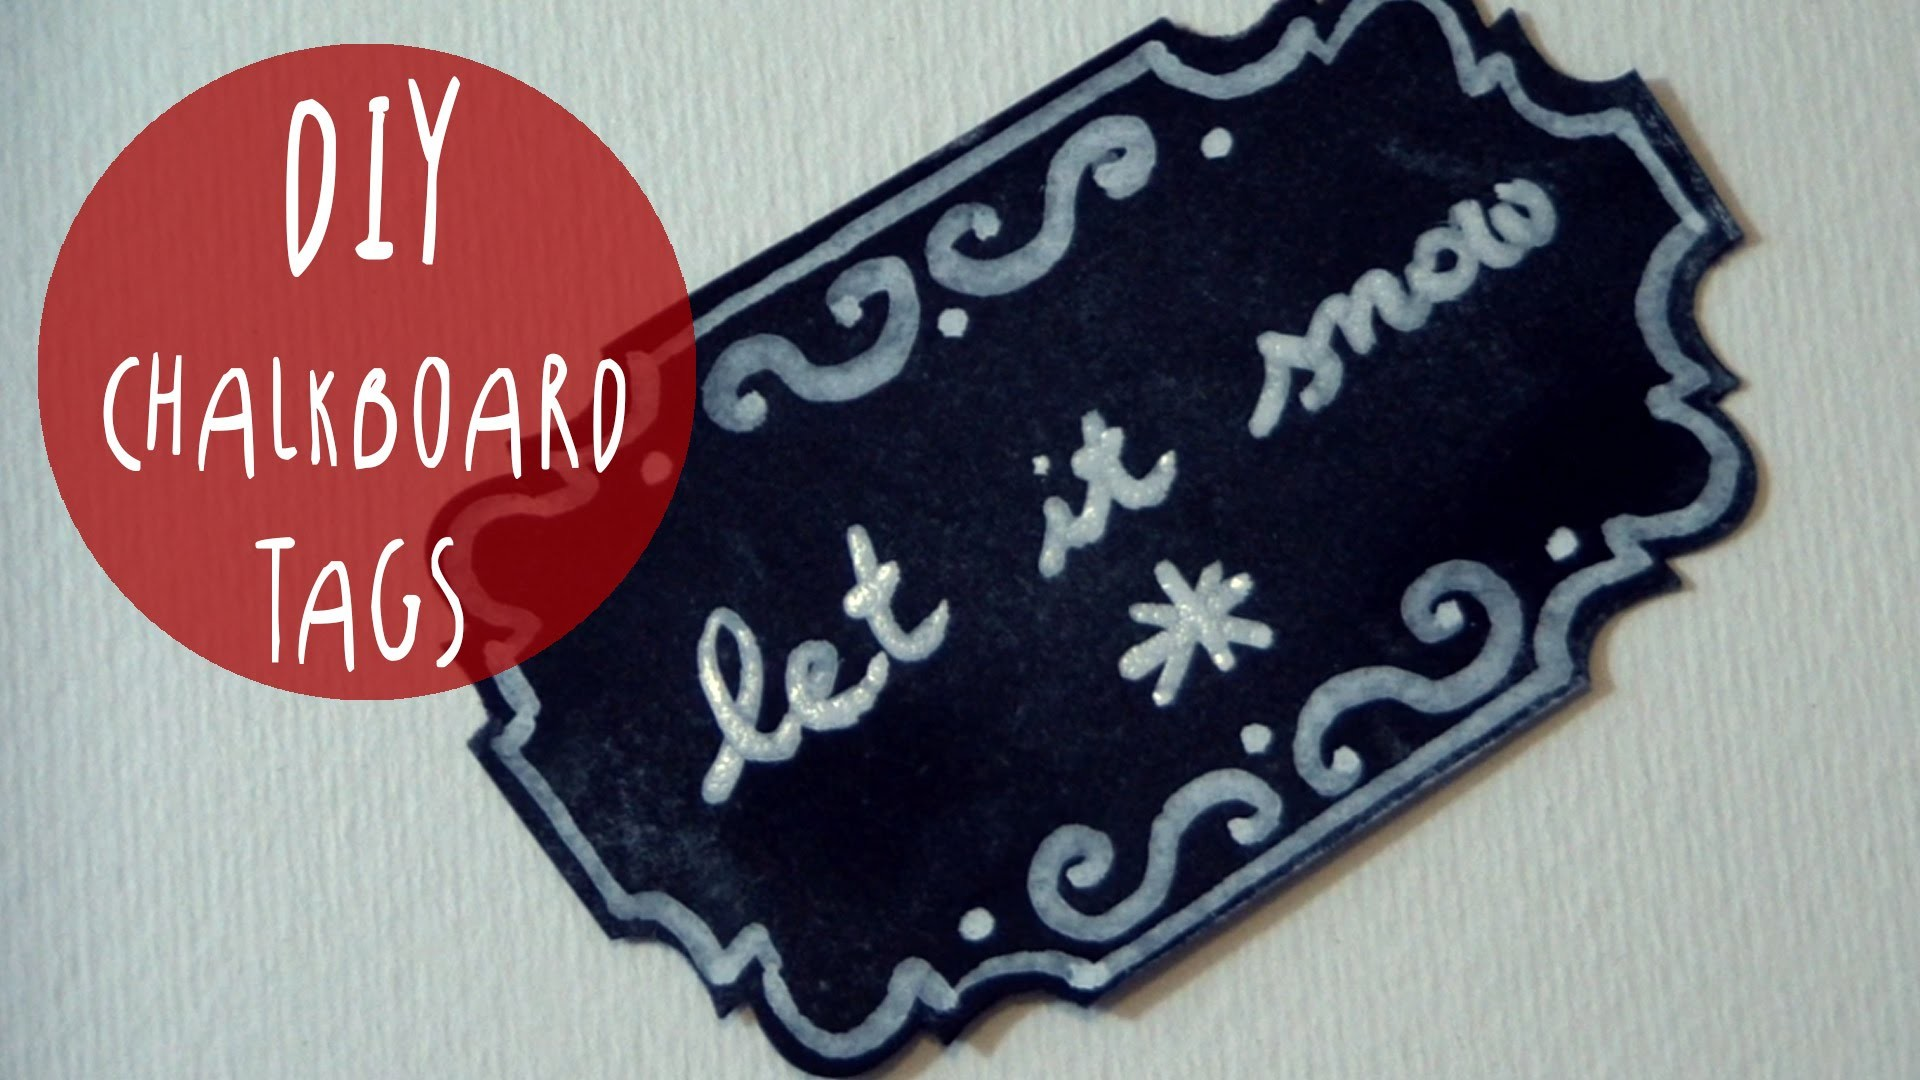 DIY Chalkboard TAGS for Gift wrapping and decorating * XMAS crafting IDEA by ART Tv